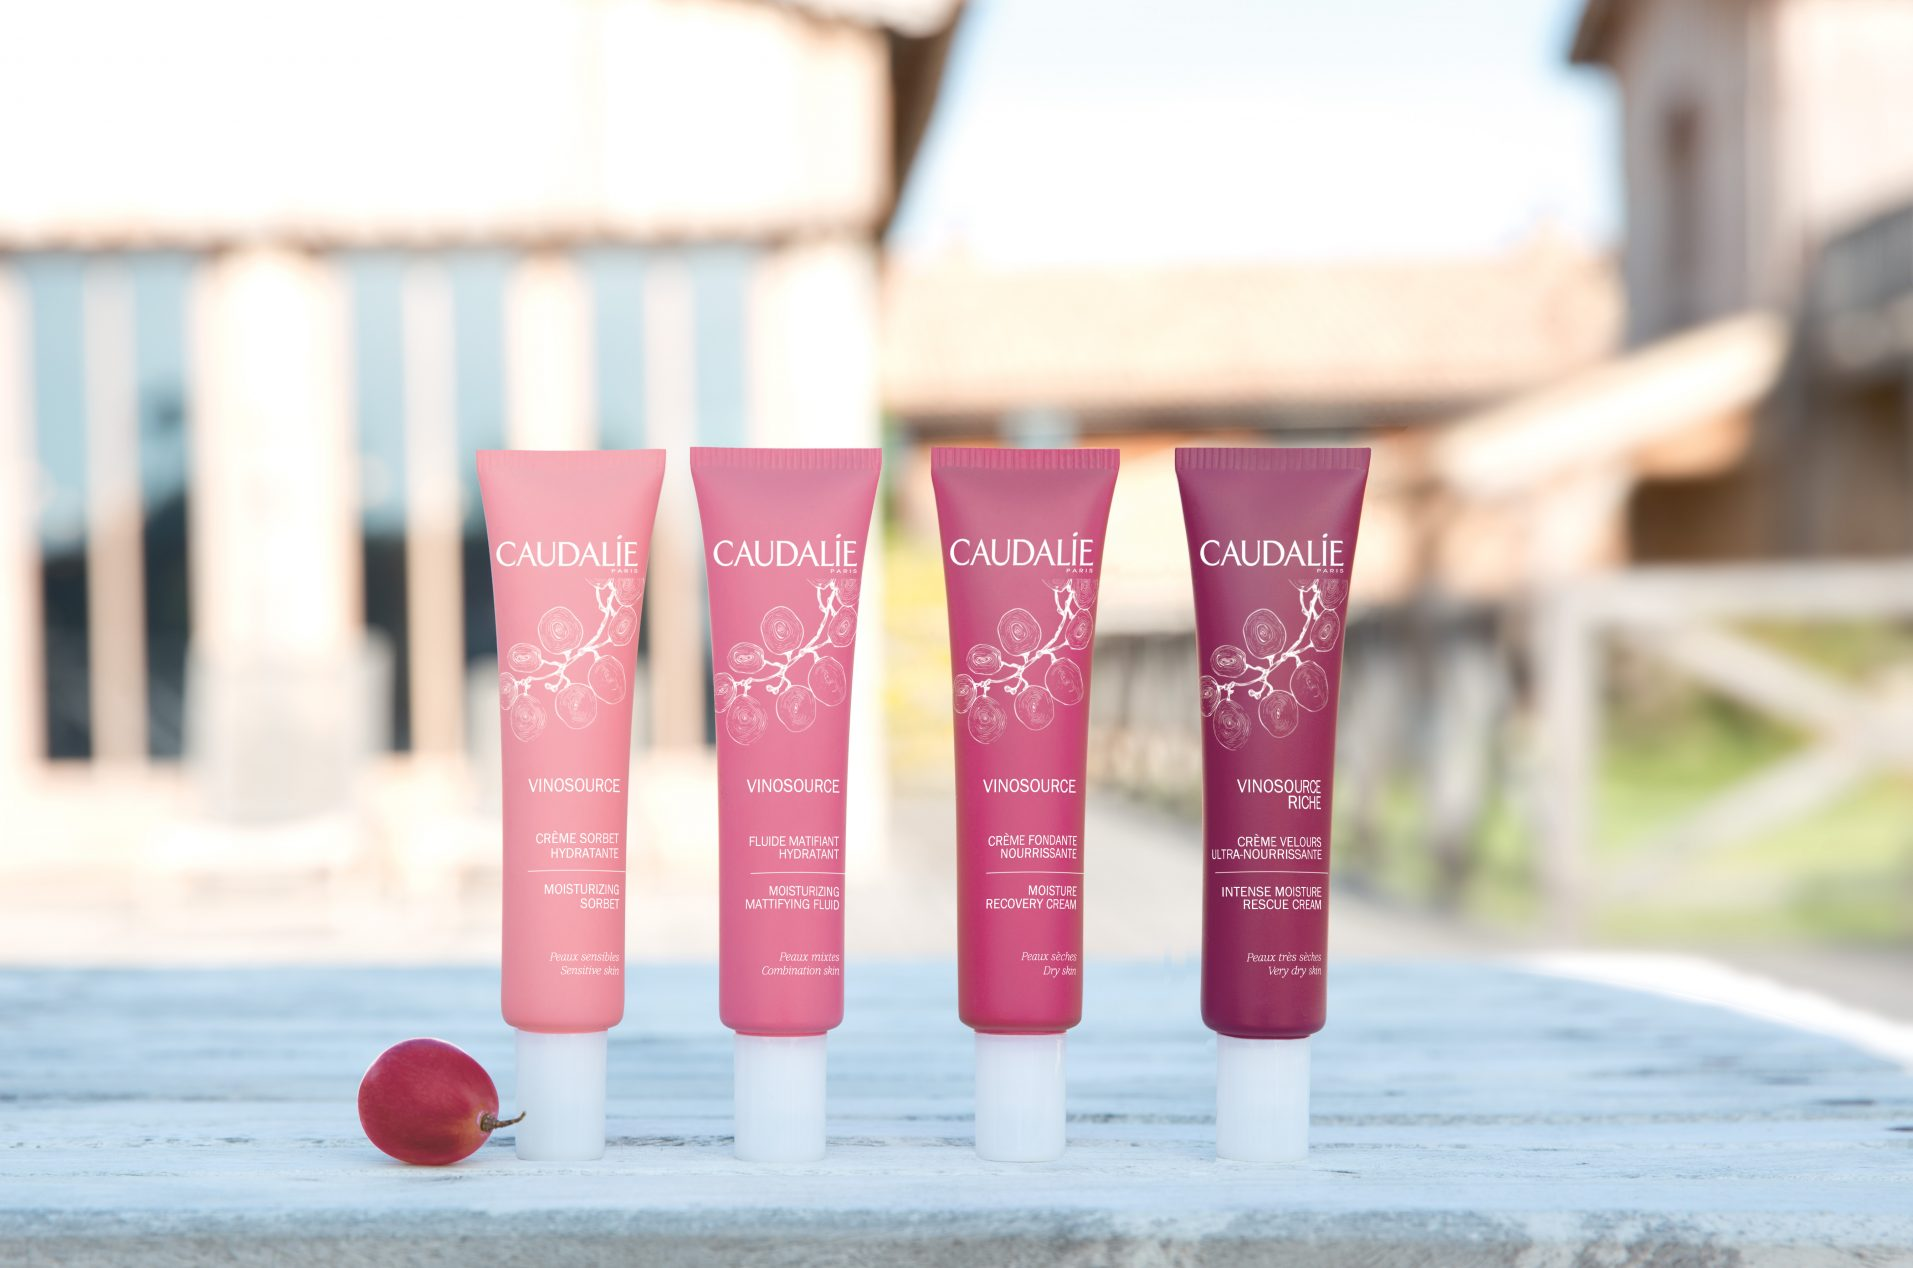 Caudalie Vinosource Range at Frontlinestyle